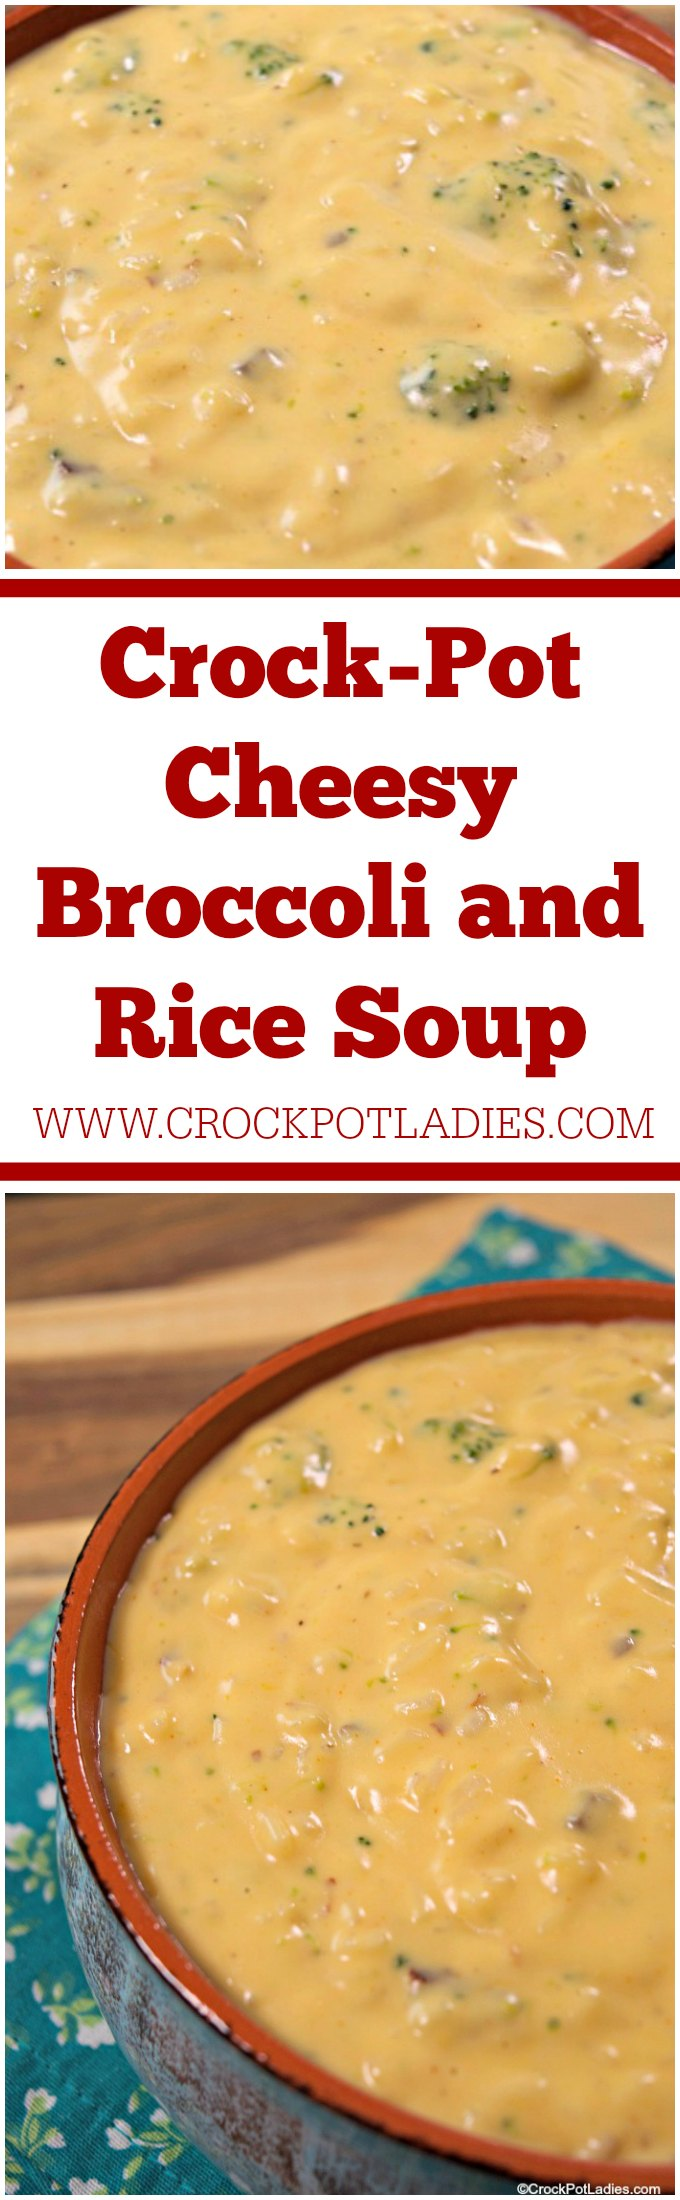 Crock-Pot Cheesy Broccoli and Rice Soup